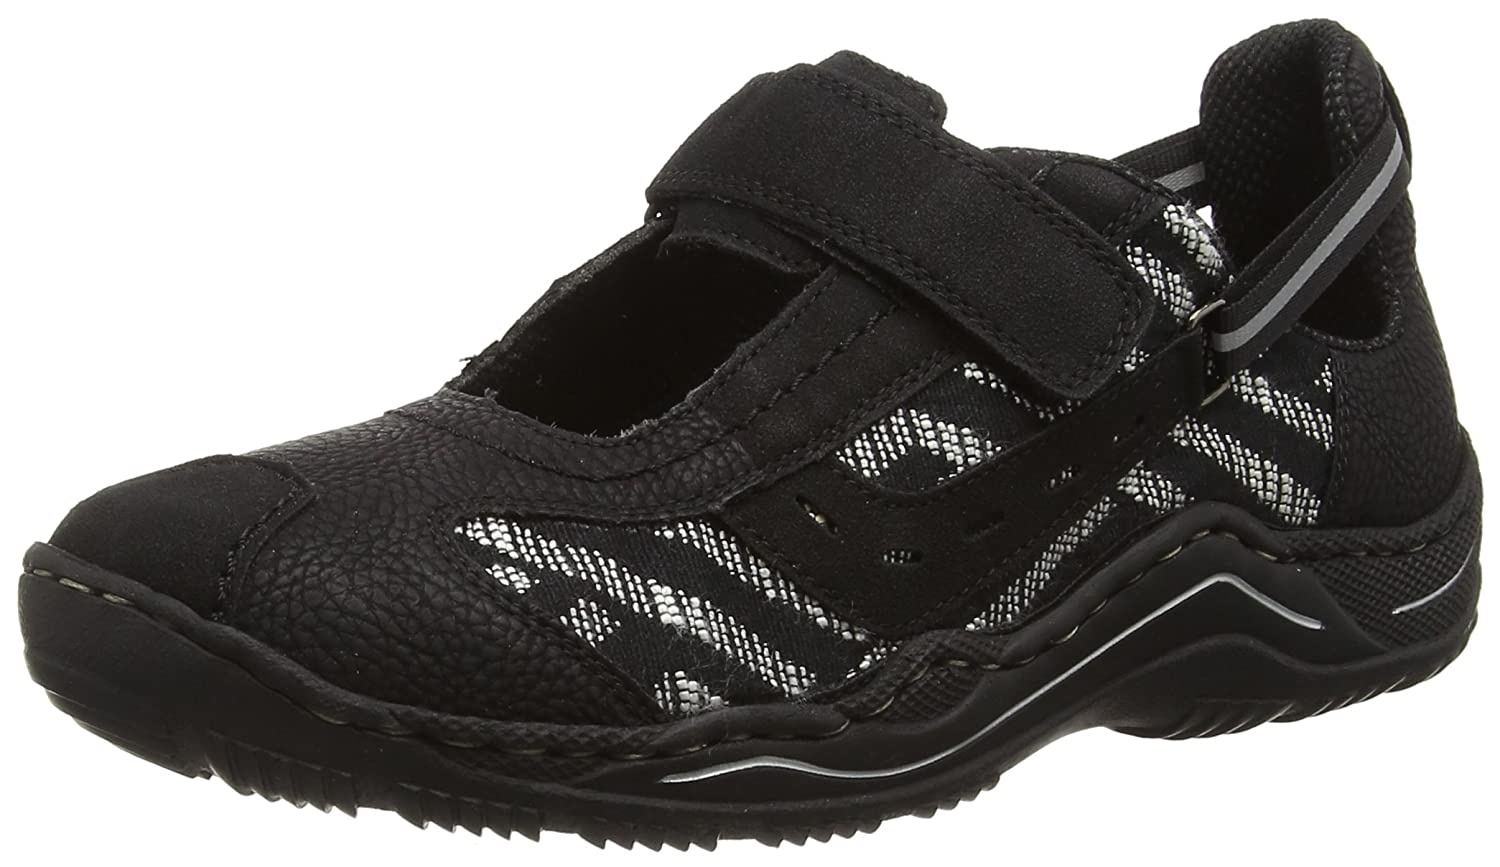 Rieker L0570 Women Low Top, Damen Sneakers, Schwarz (schwarz